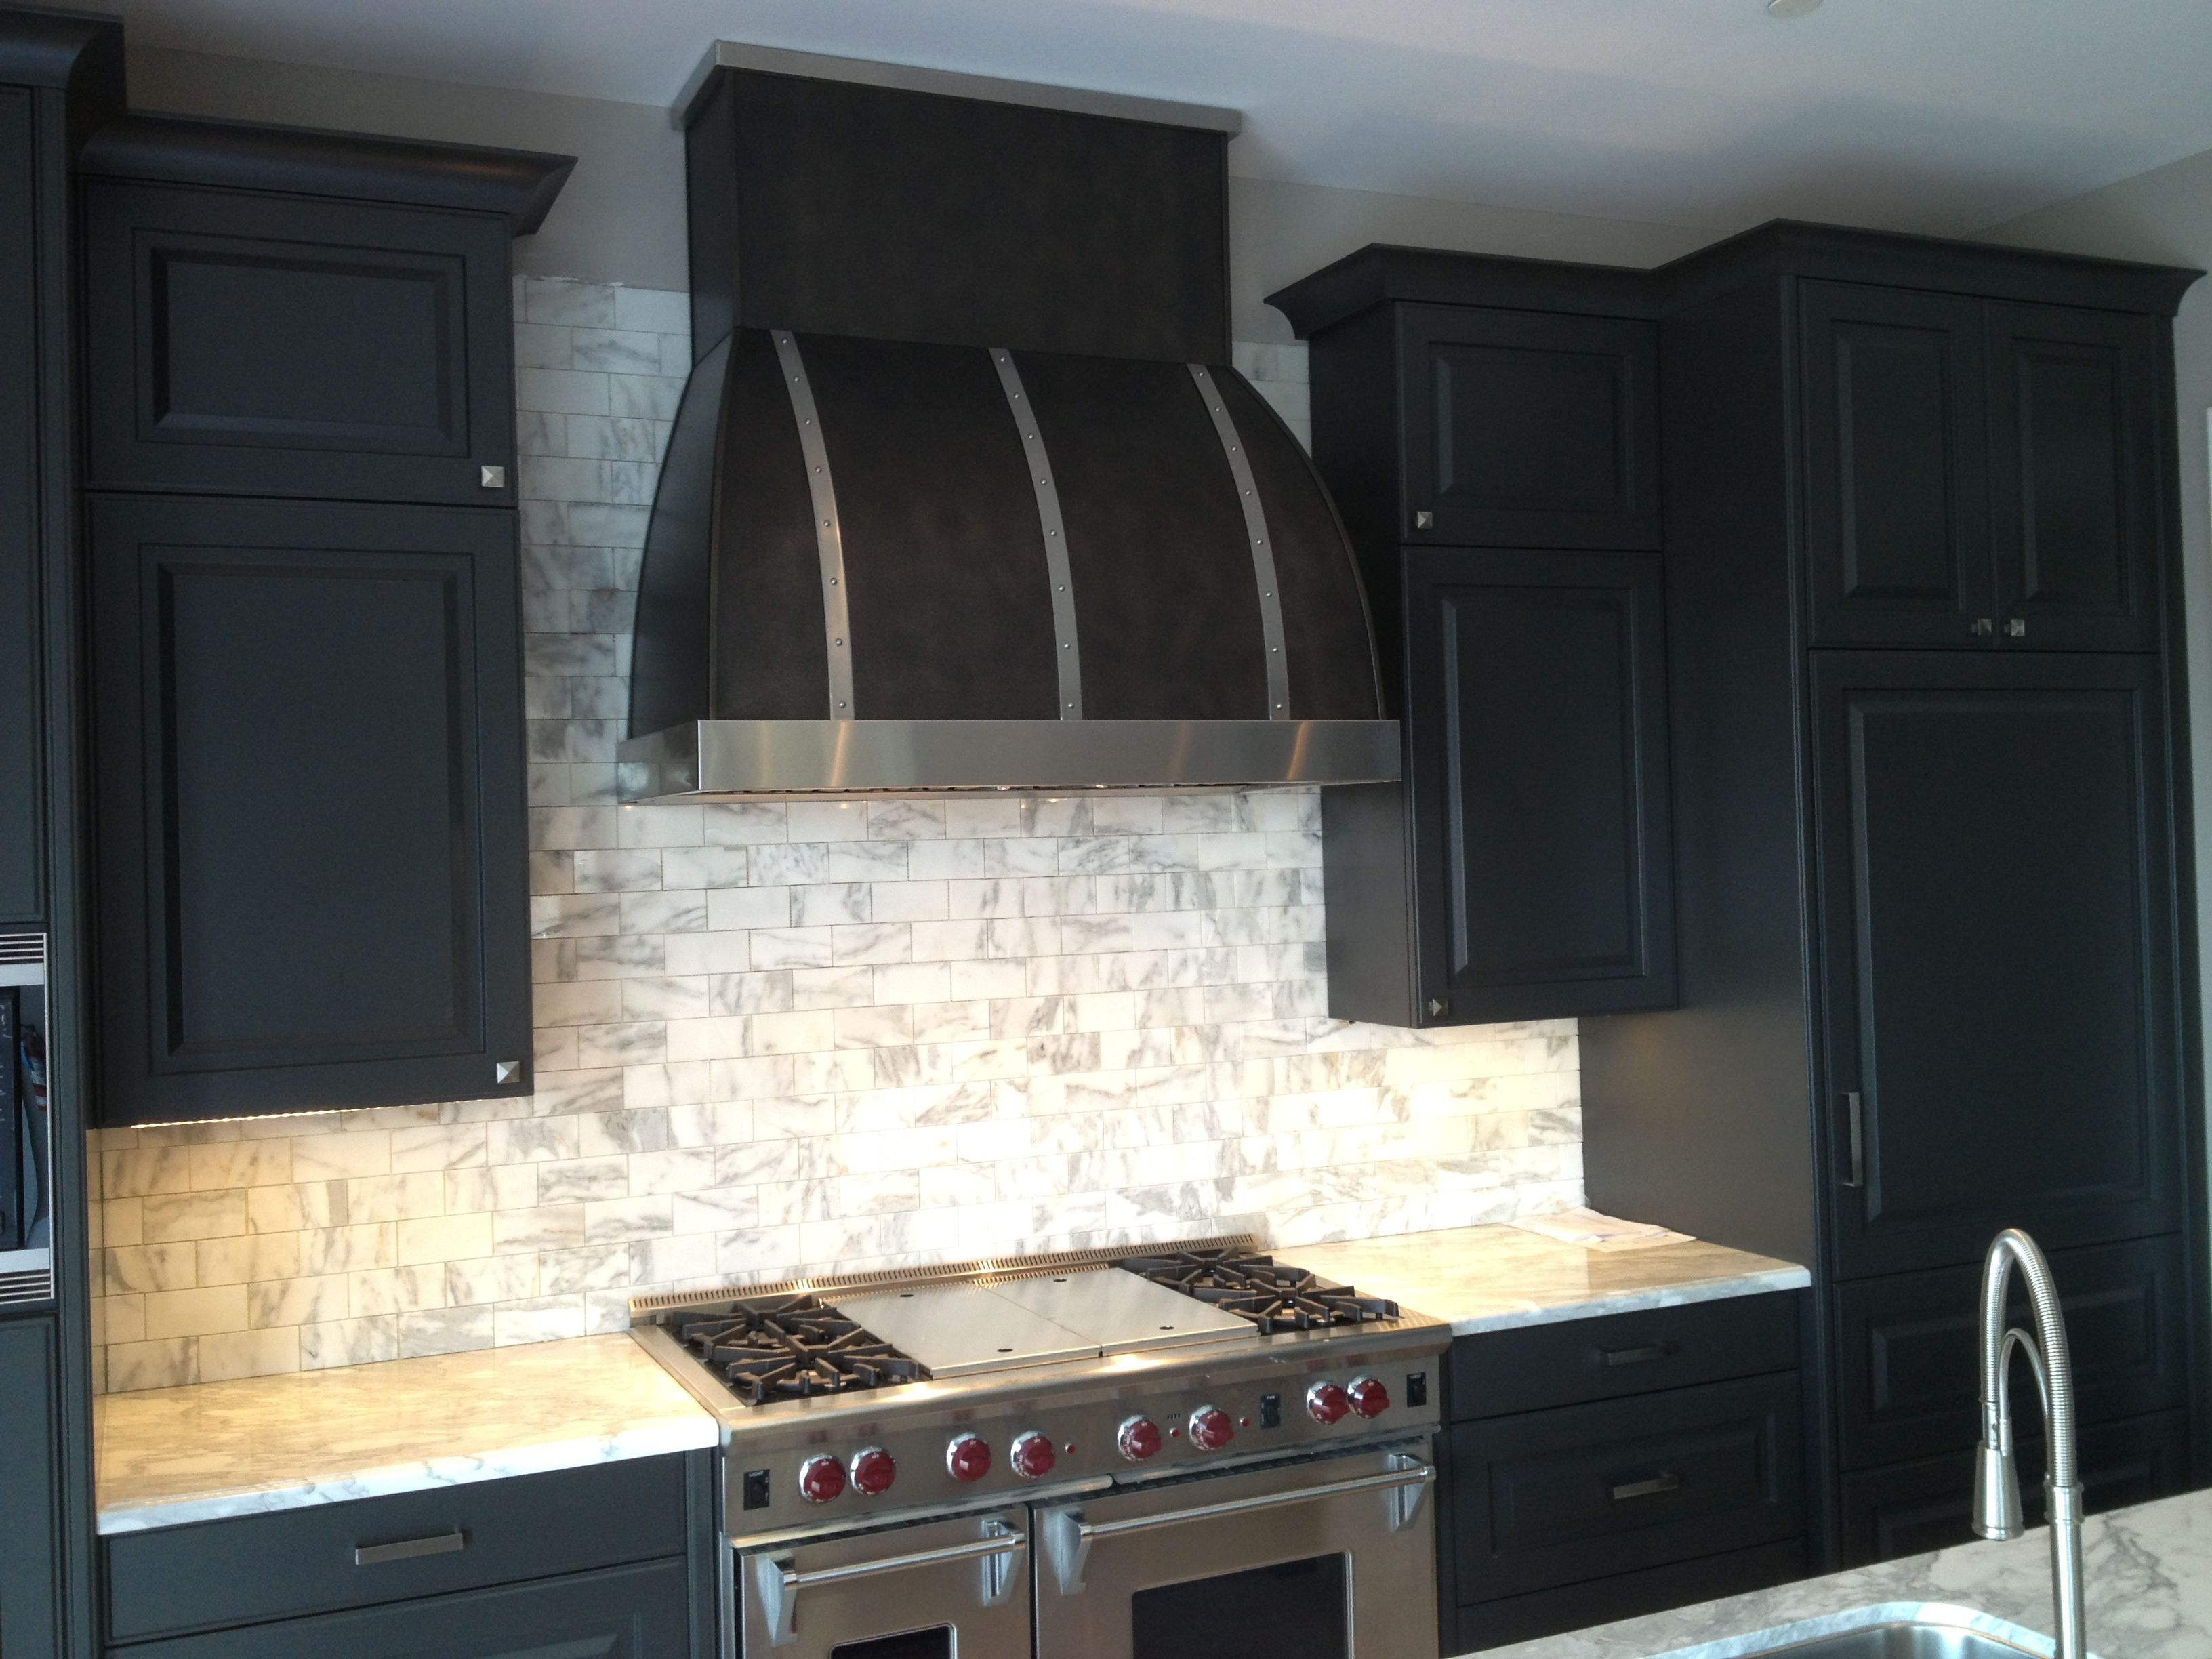 Restaurant kitchen hood stainless backsplash - Black Range Hood With Brushed Stainless Steel Trim By Www Customrangehoods Ca